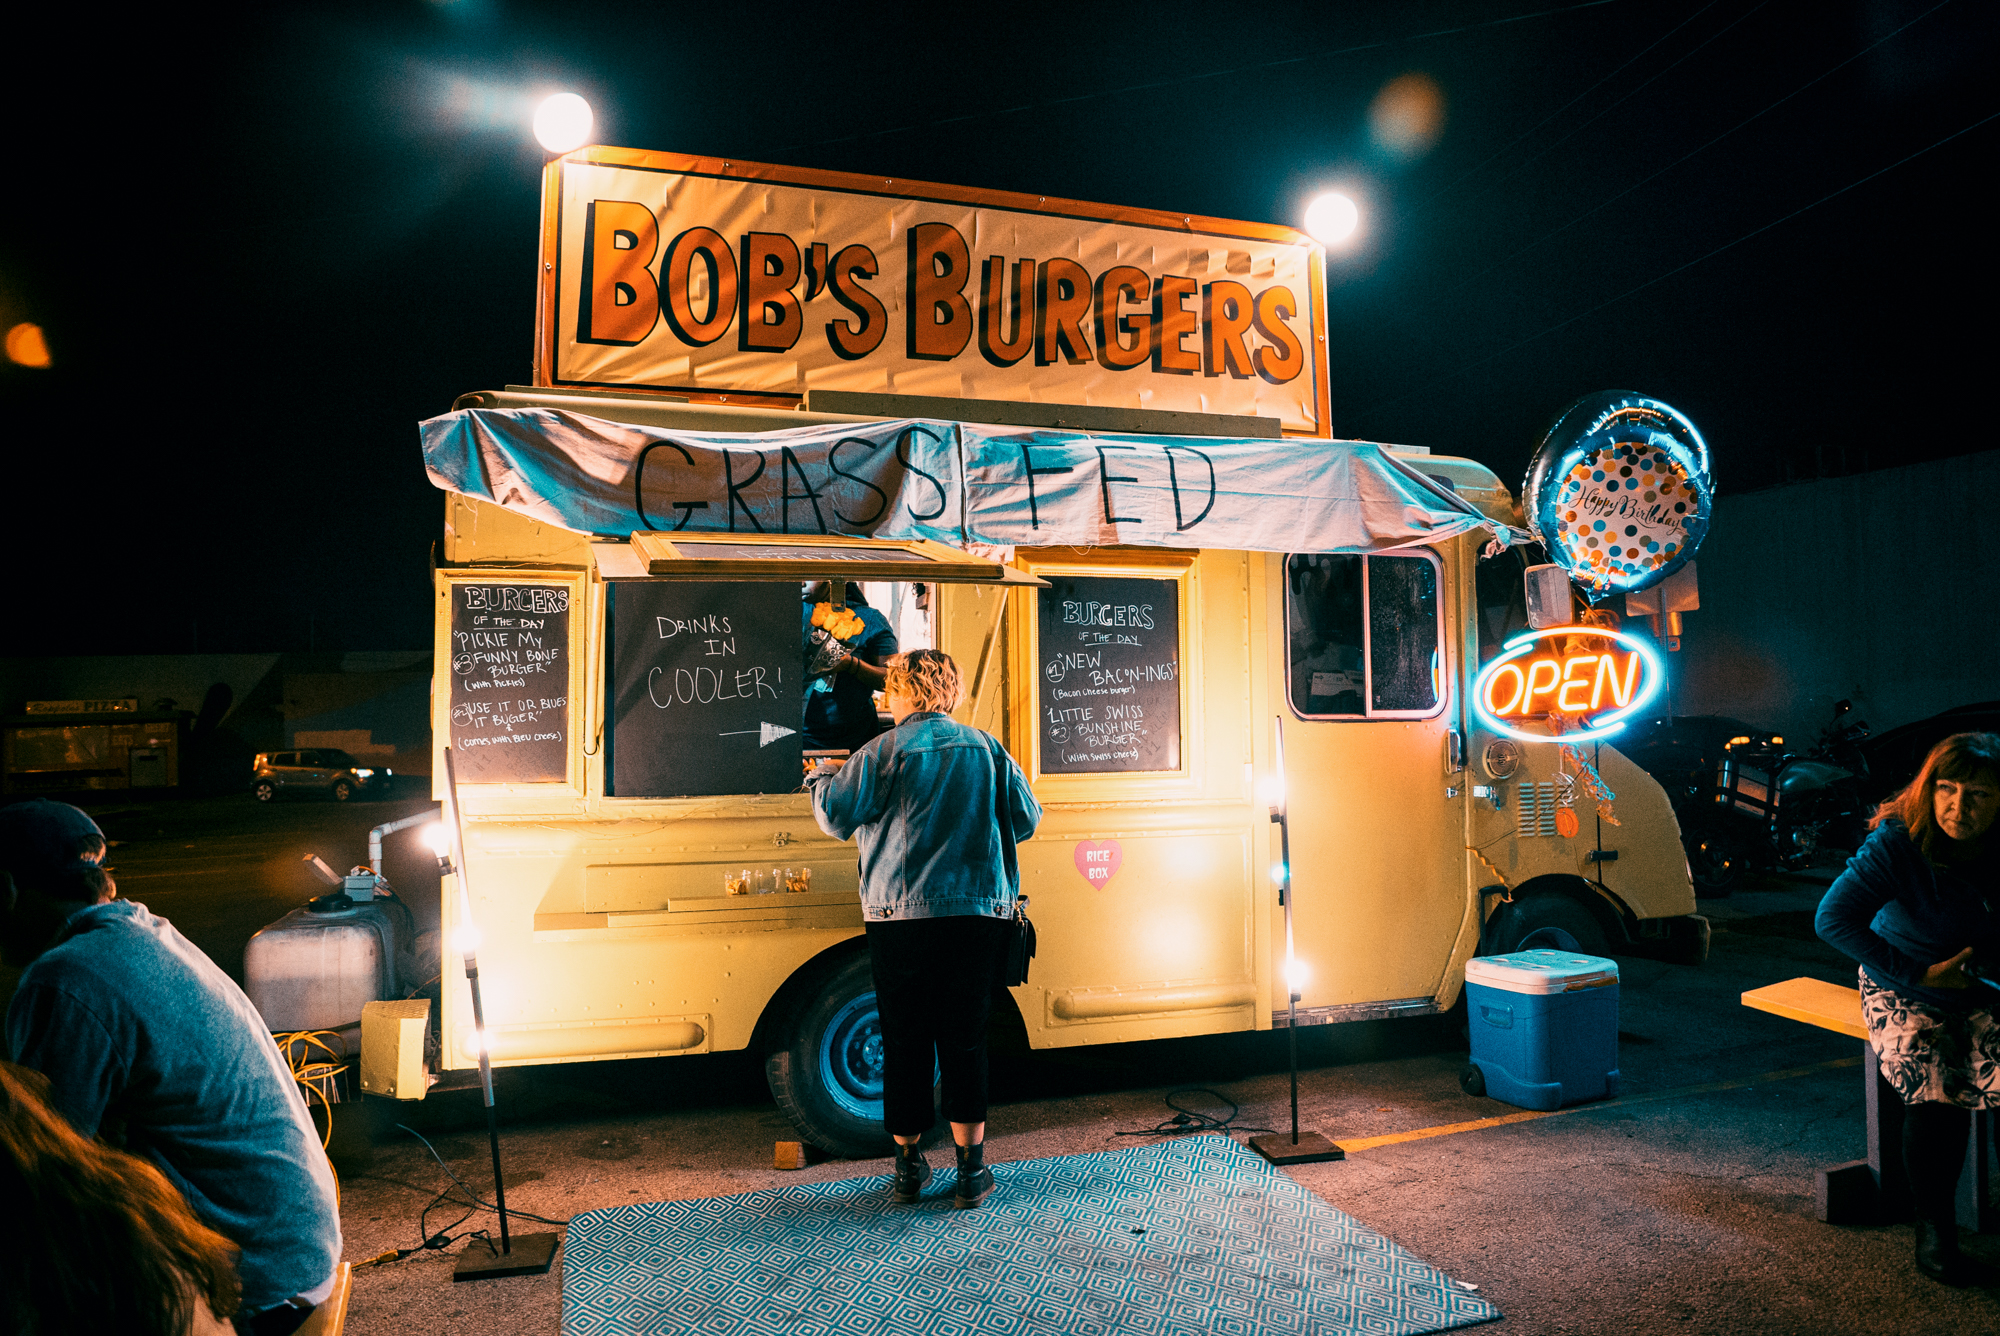 Bob's Burgers Official Food Truck